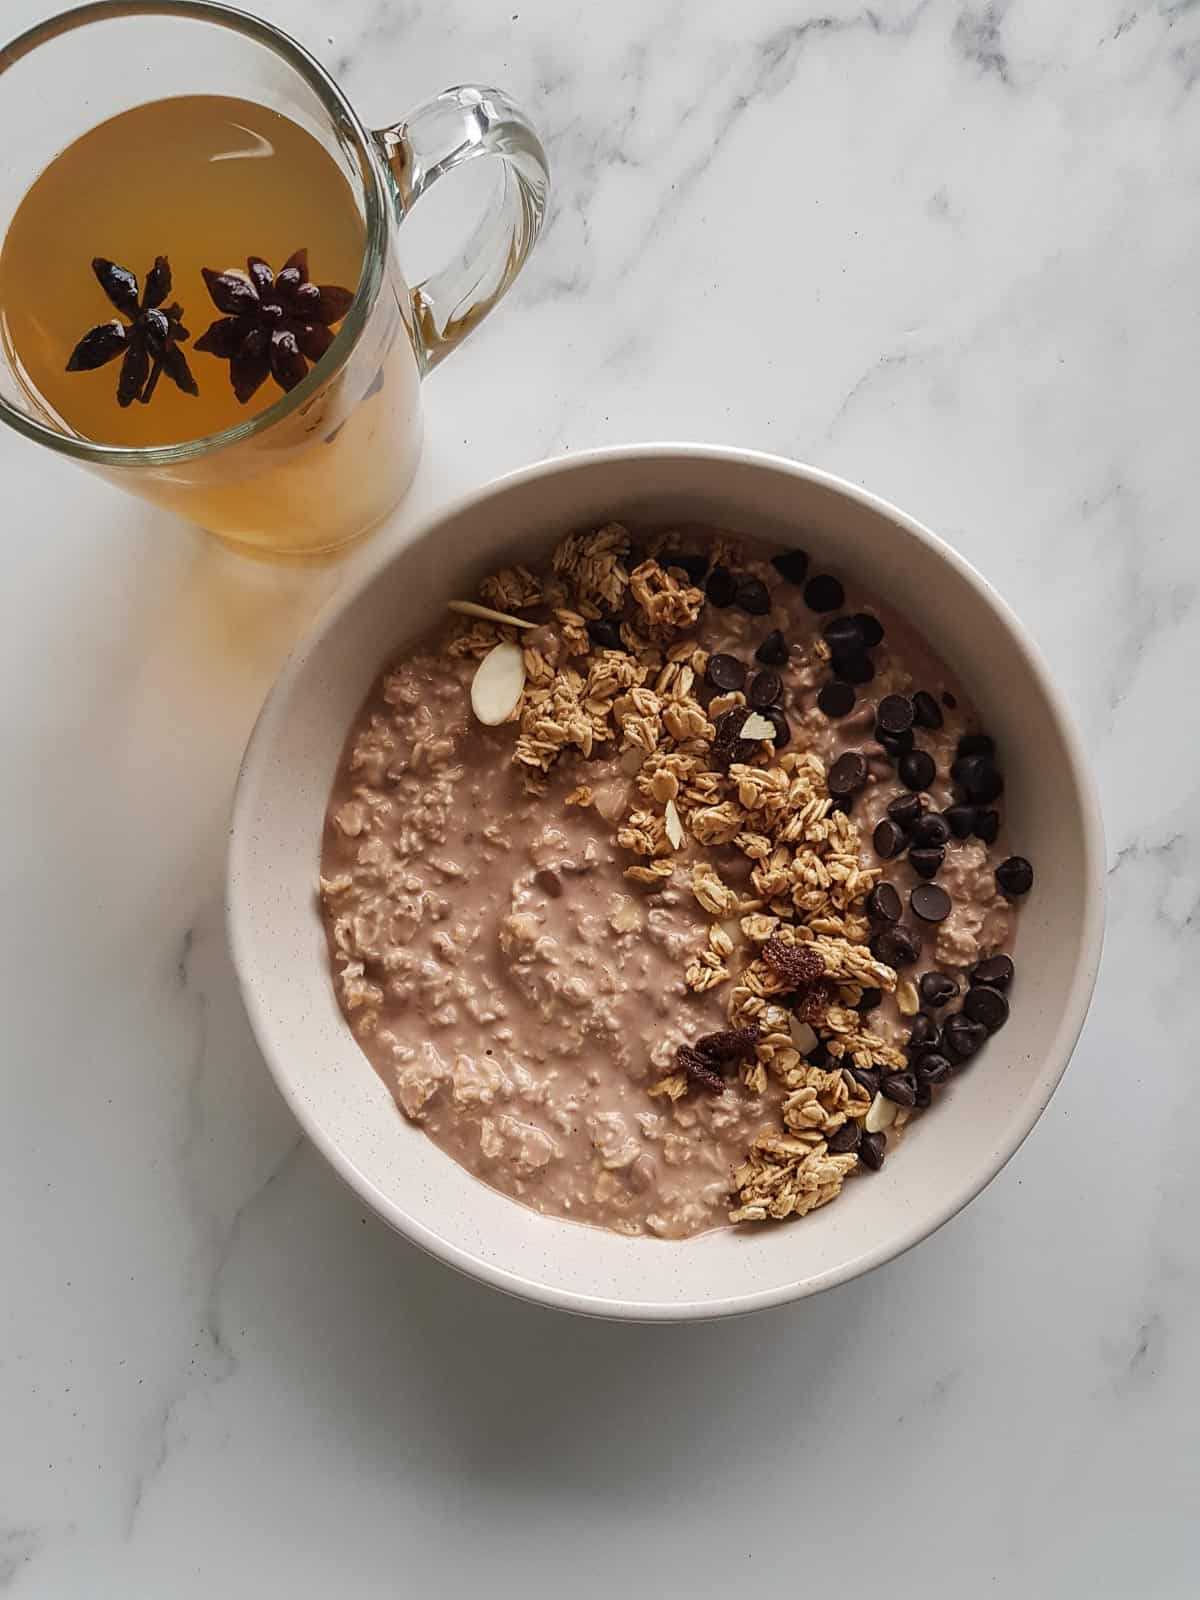 A bowl of chocolate overnight oats, with a cup of tea on the side.